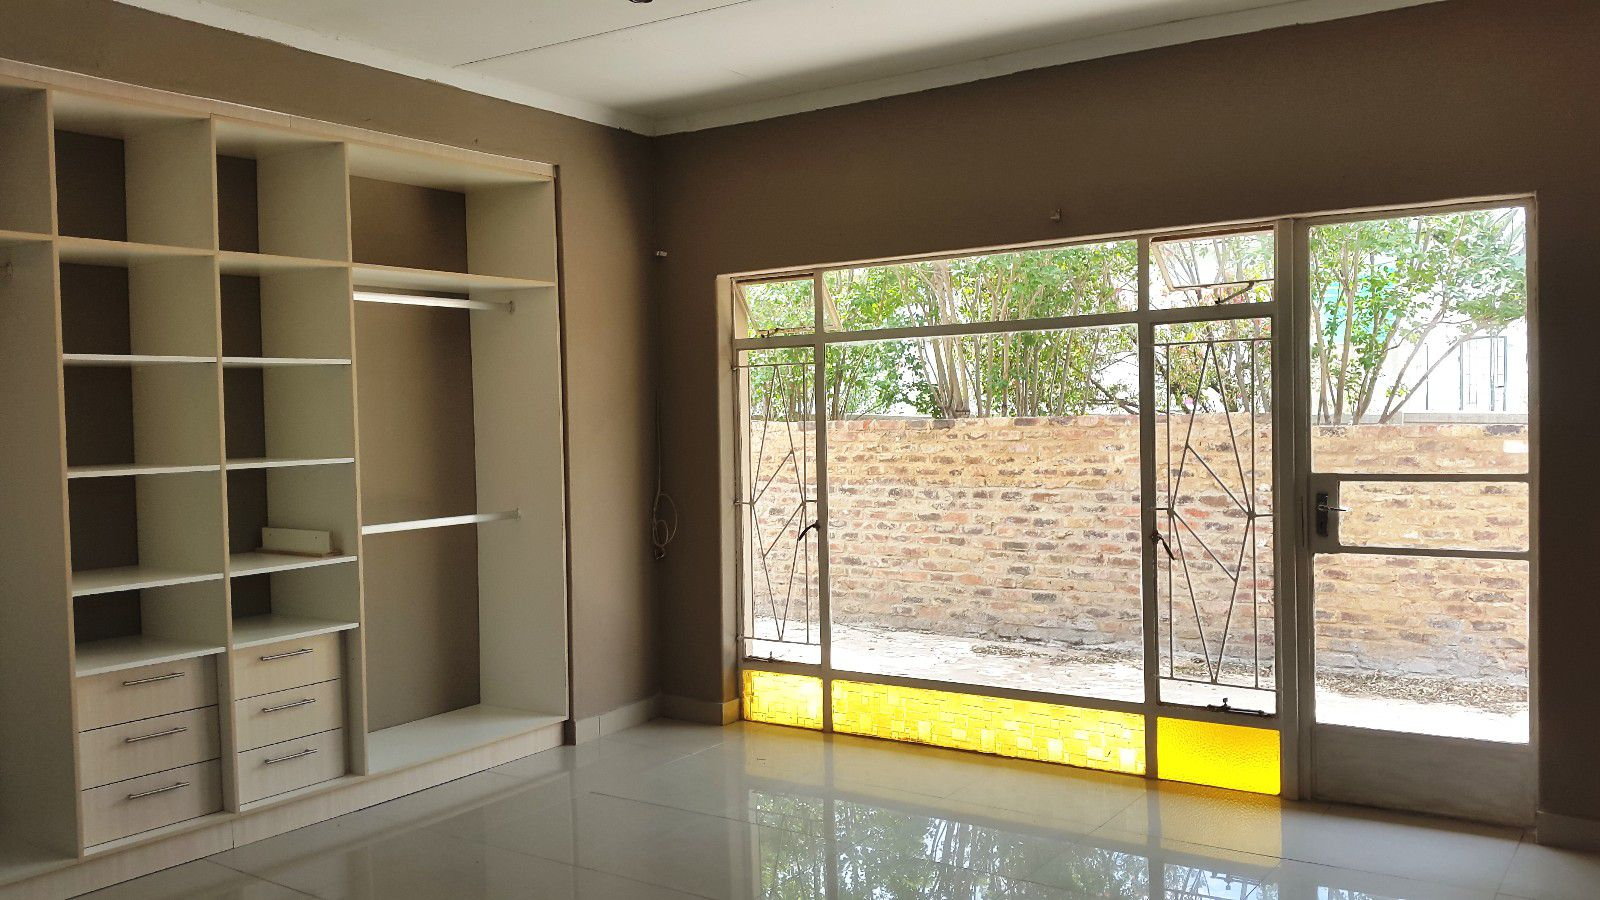 Potchefstroom Central property for sale. Ref No: 13410360. Picture no 12